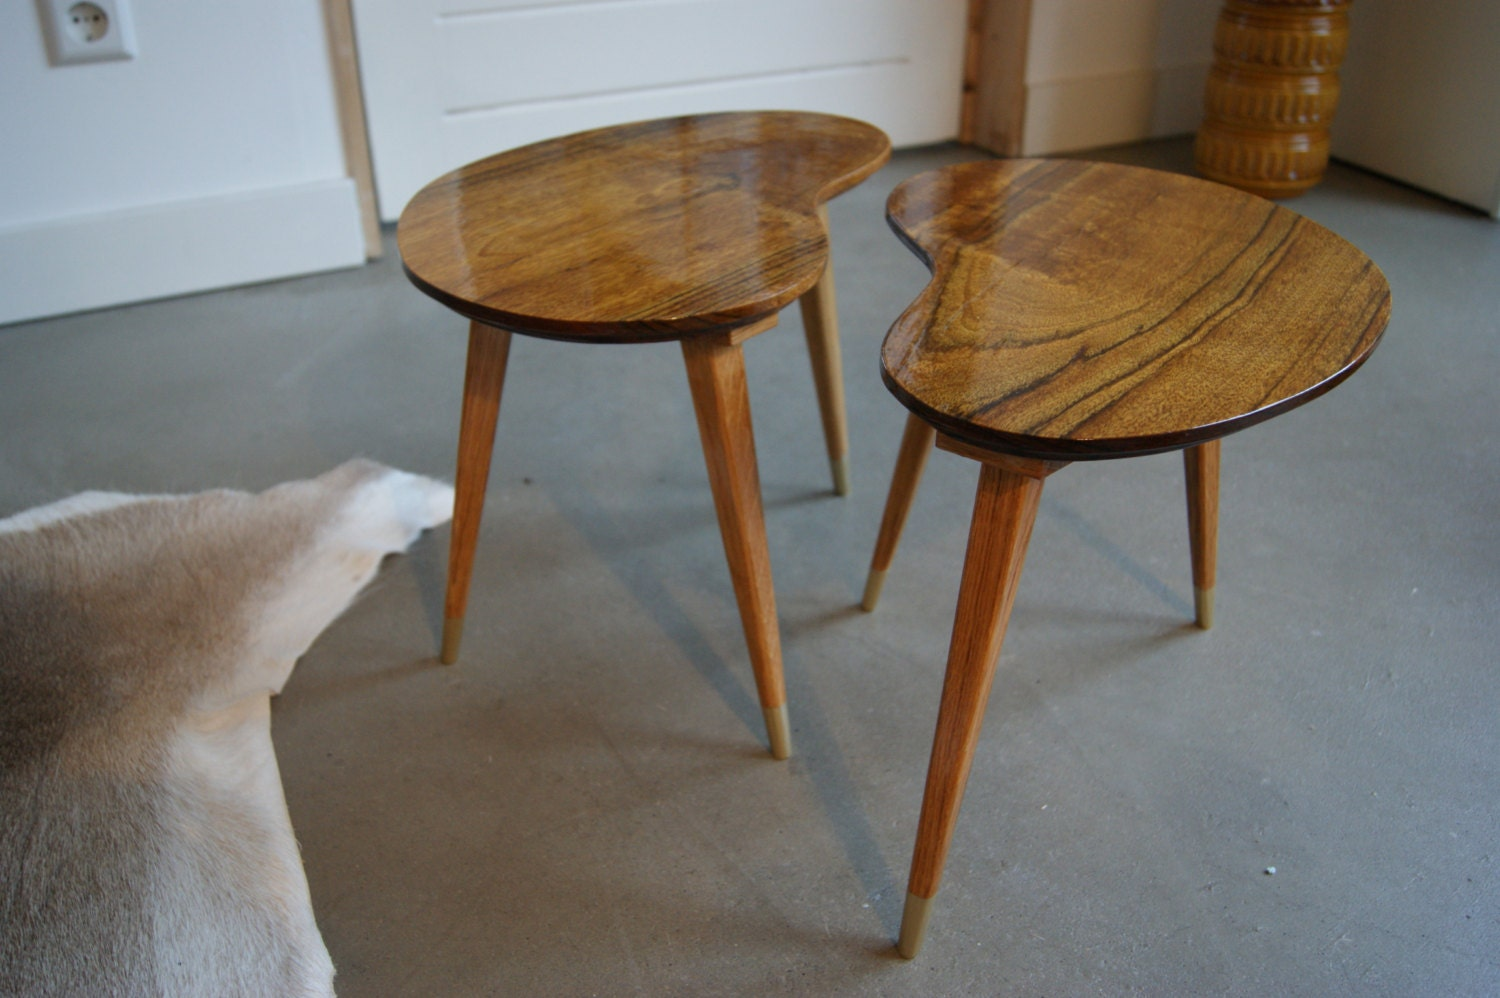 Kidney Bean Shaped Coffee Tables Set